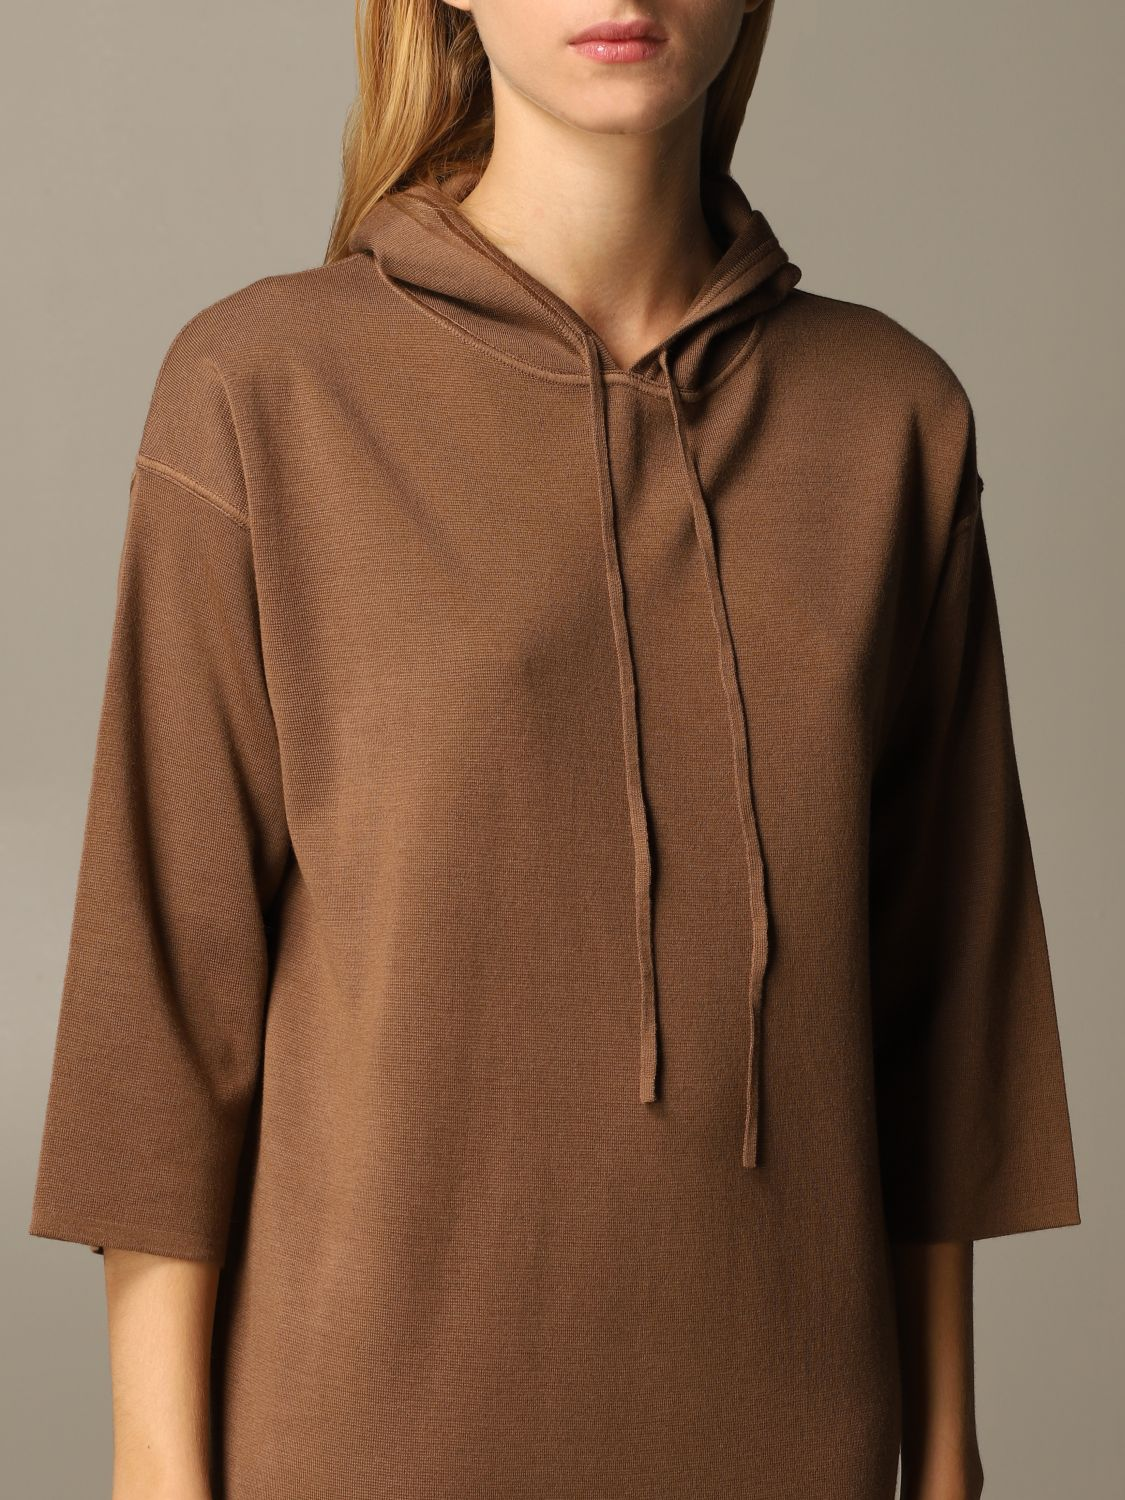 Dress Max Mara: Dress women Max Mara tobacco 4